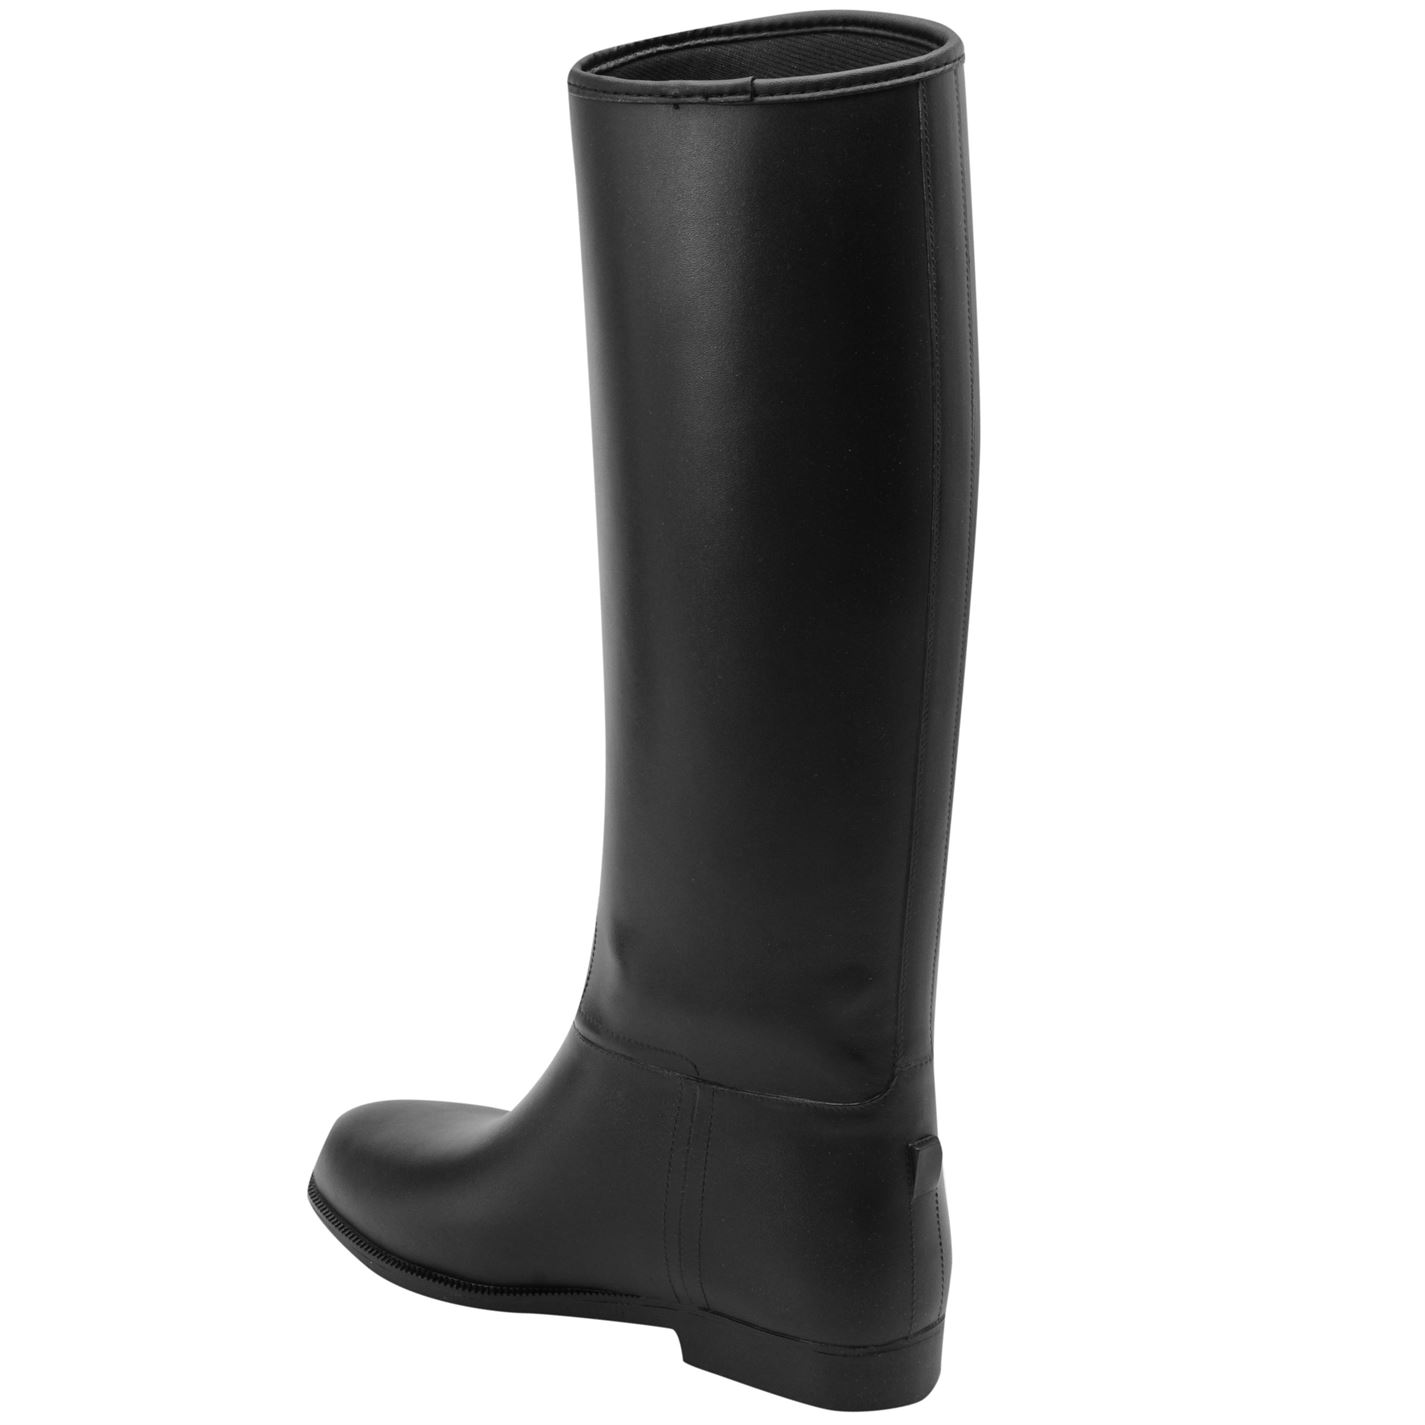 Gents Hombre On Rubber Negro Riding Long Shires Jodhpur Boots Pull UTwgqCP